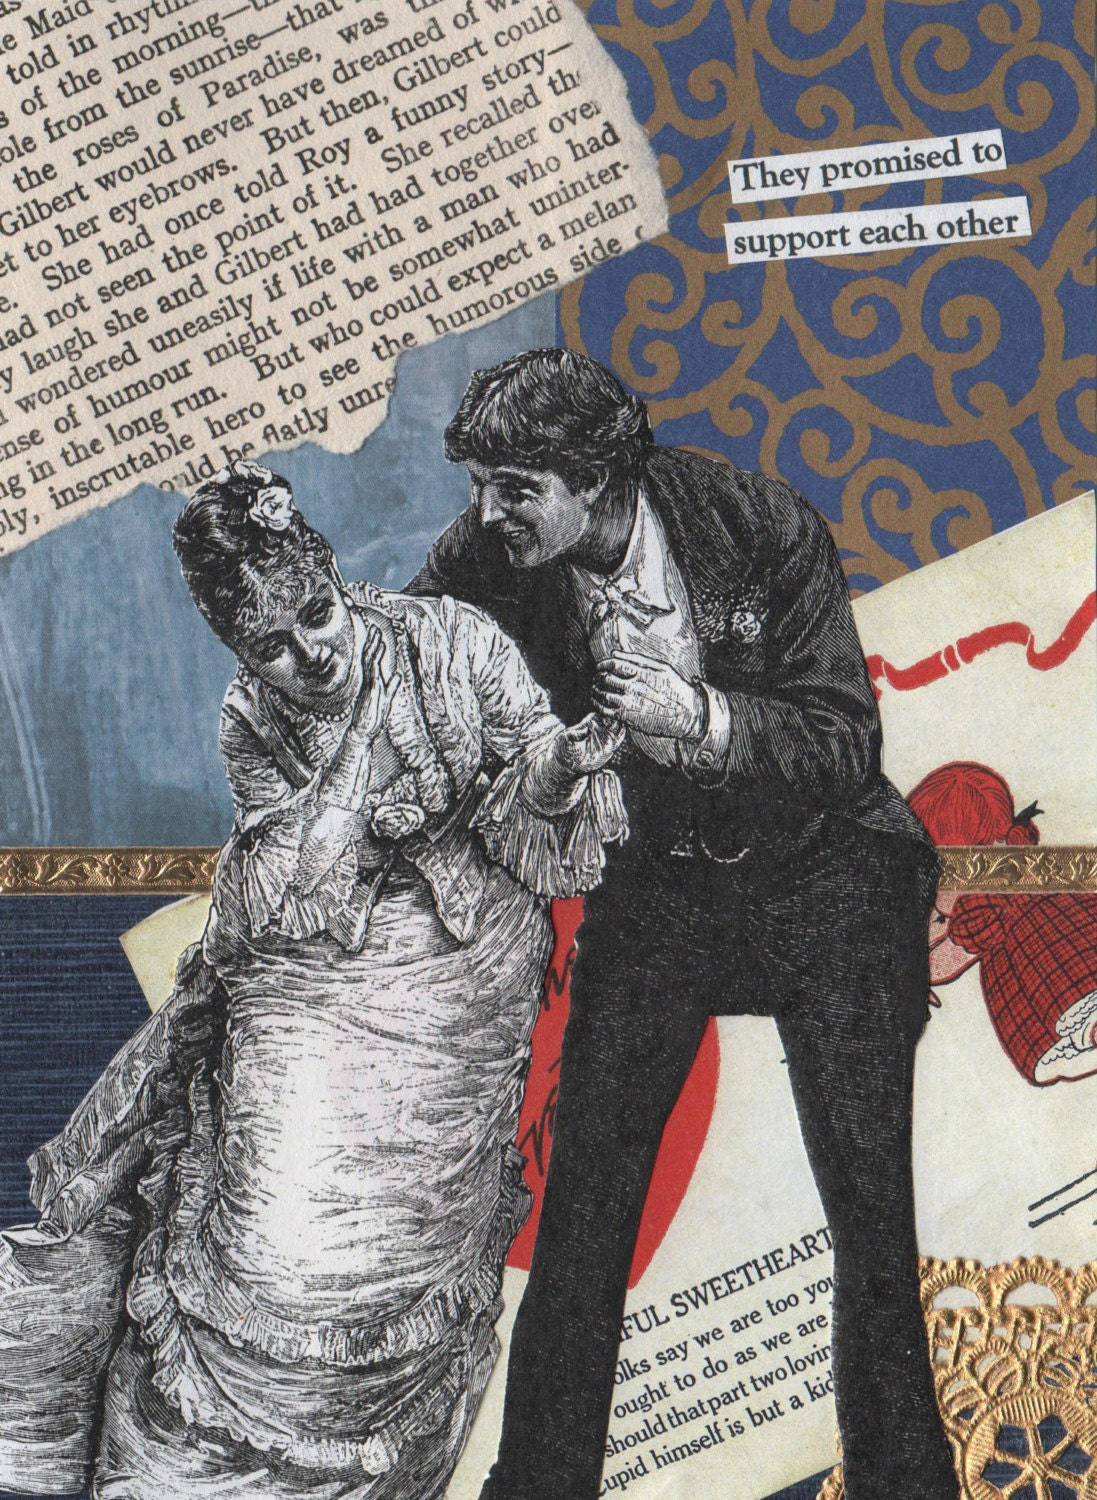 Quirky Romantic Card With Victorian Couple Mixed Media Art Collage   -- They Support Each Other - rhodyart